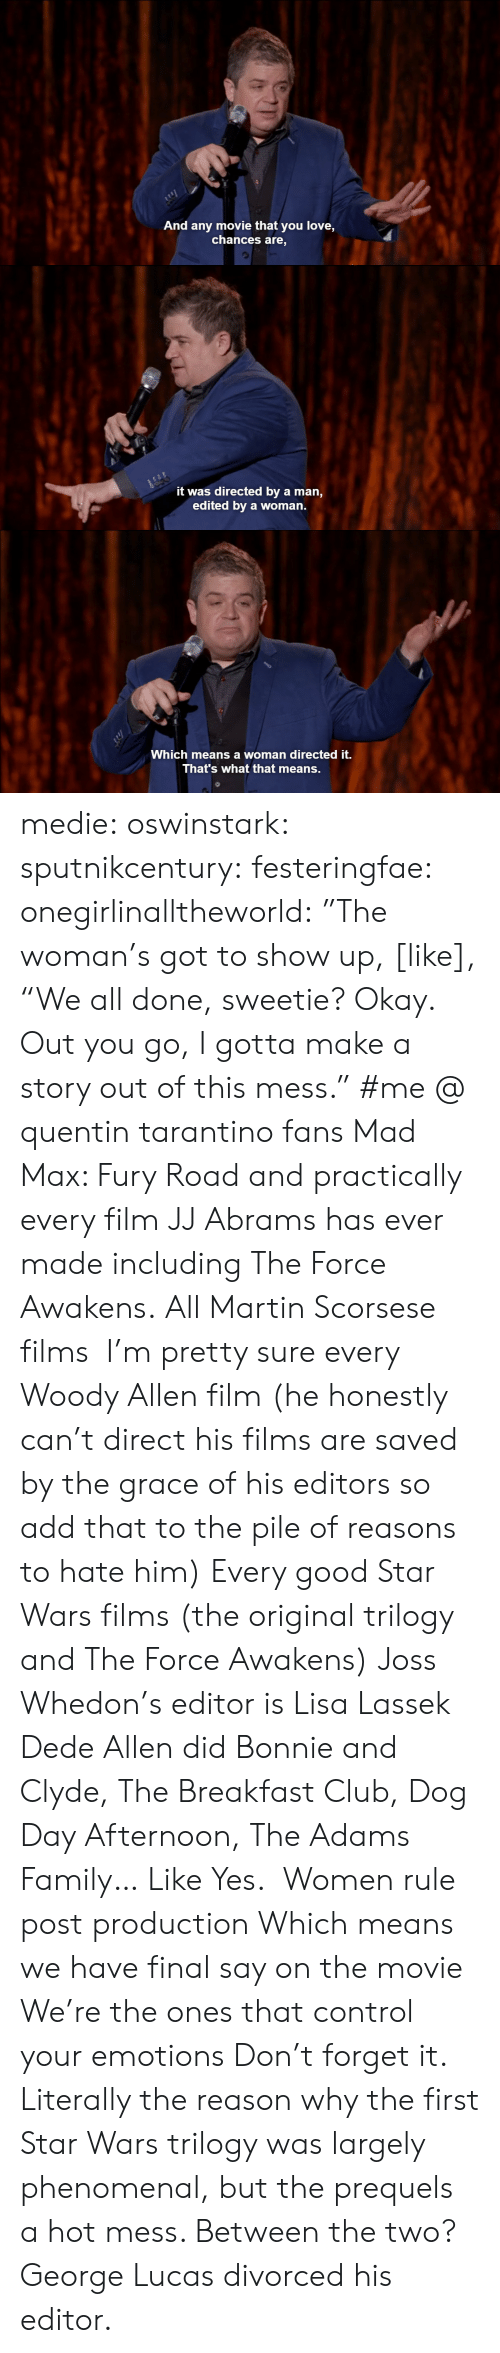 """The Breakfast Club: And any movie that you love,  chances are,   it was directed by a man,  edited by a woman.   c-  Which means a woman directed it.  That's what that means. medie:   oswinstark:  sputnikcentury:  festeringfae:  onegirlinalltheworld:  """"The woman's got to show up, [like], """"We all done, sweetie? Okay. Out you go, I gotta make a story out of this mess.""""  #me @ quentin tarantino fans  Mad Max: Fury Road and practically every film JJ Abrams has ever made including The Force Awakens.  All Martin Scorsese films I'm pretty sure every Woody Allen film (he honestly can't direct his films are saved by the grace of his editors so add that to the pile of reasons to hate him) Every good Star Wars films (the original trilogy and The Force Awakens) Joss Whedon's editor is Lisa Lassek Dede Allen did Bonnie and Clyde, The Breakfast Club, Dog Day Afternoon, The Adams Family… Like Yes. Women rule post production Which means we have final say on the movie We're the ones that control your emotions Don't forget it.  Literally the reason why the first Star Wars trilogy was largely phenomenal, but the prequels a hot mess.  Between the two? George Lucas divorced his editor."""